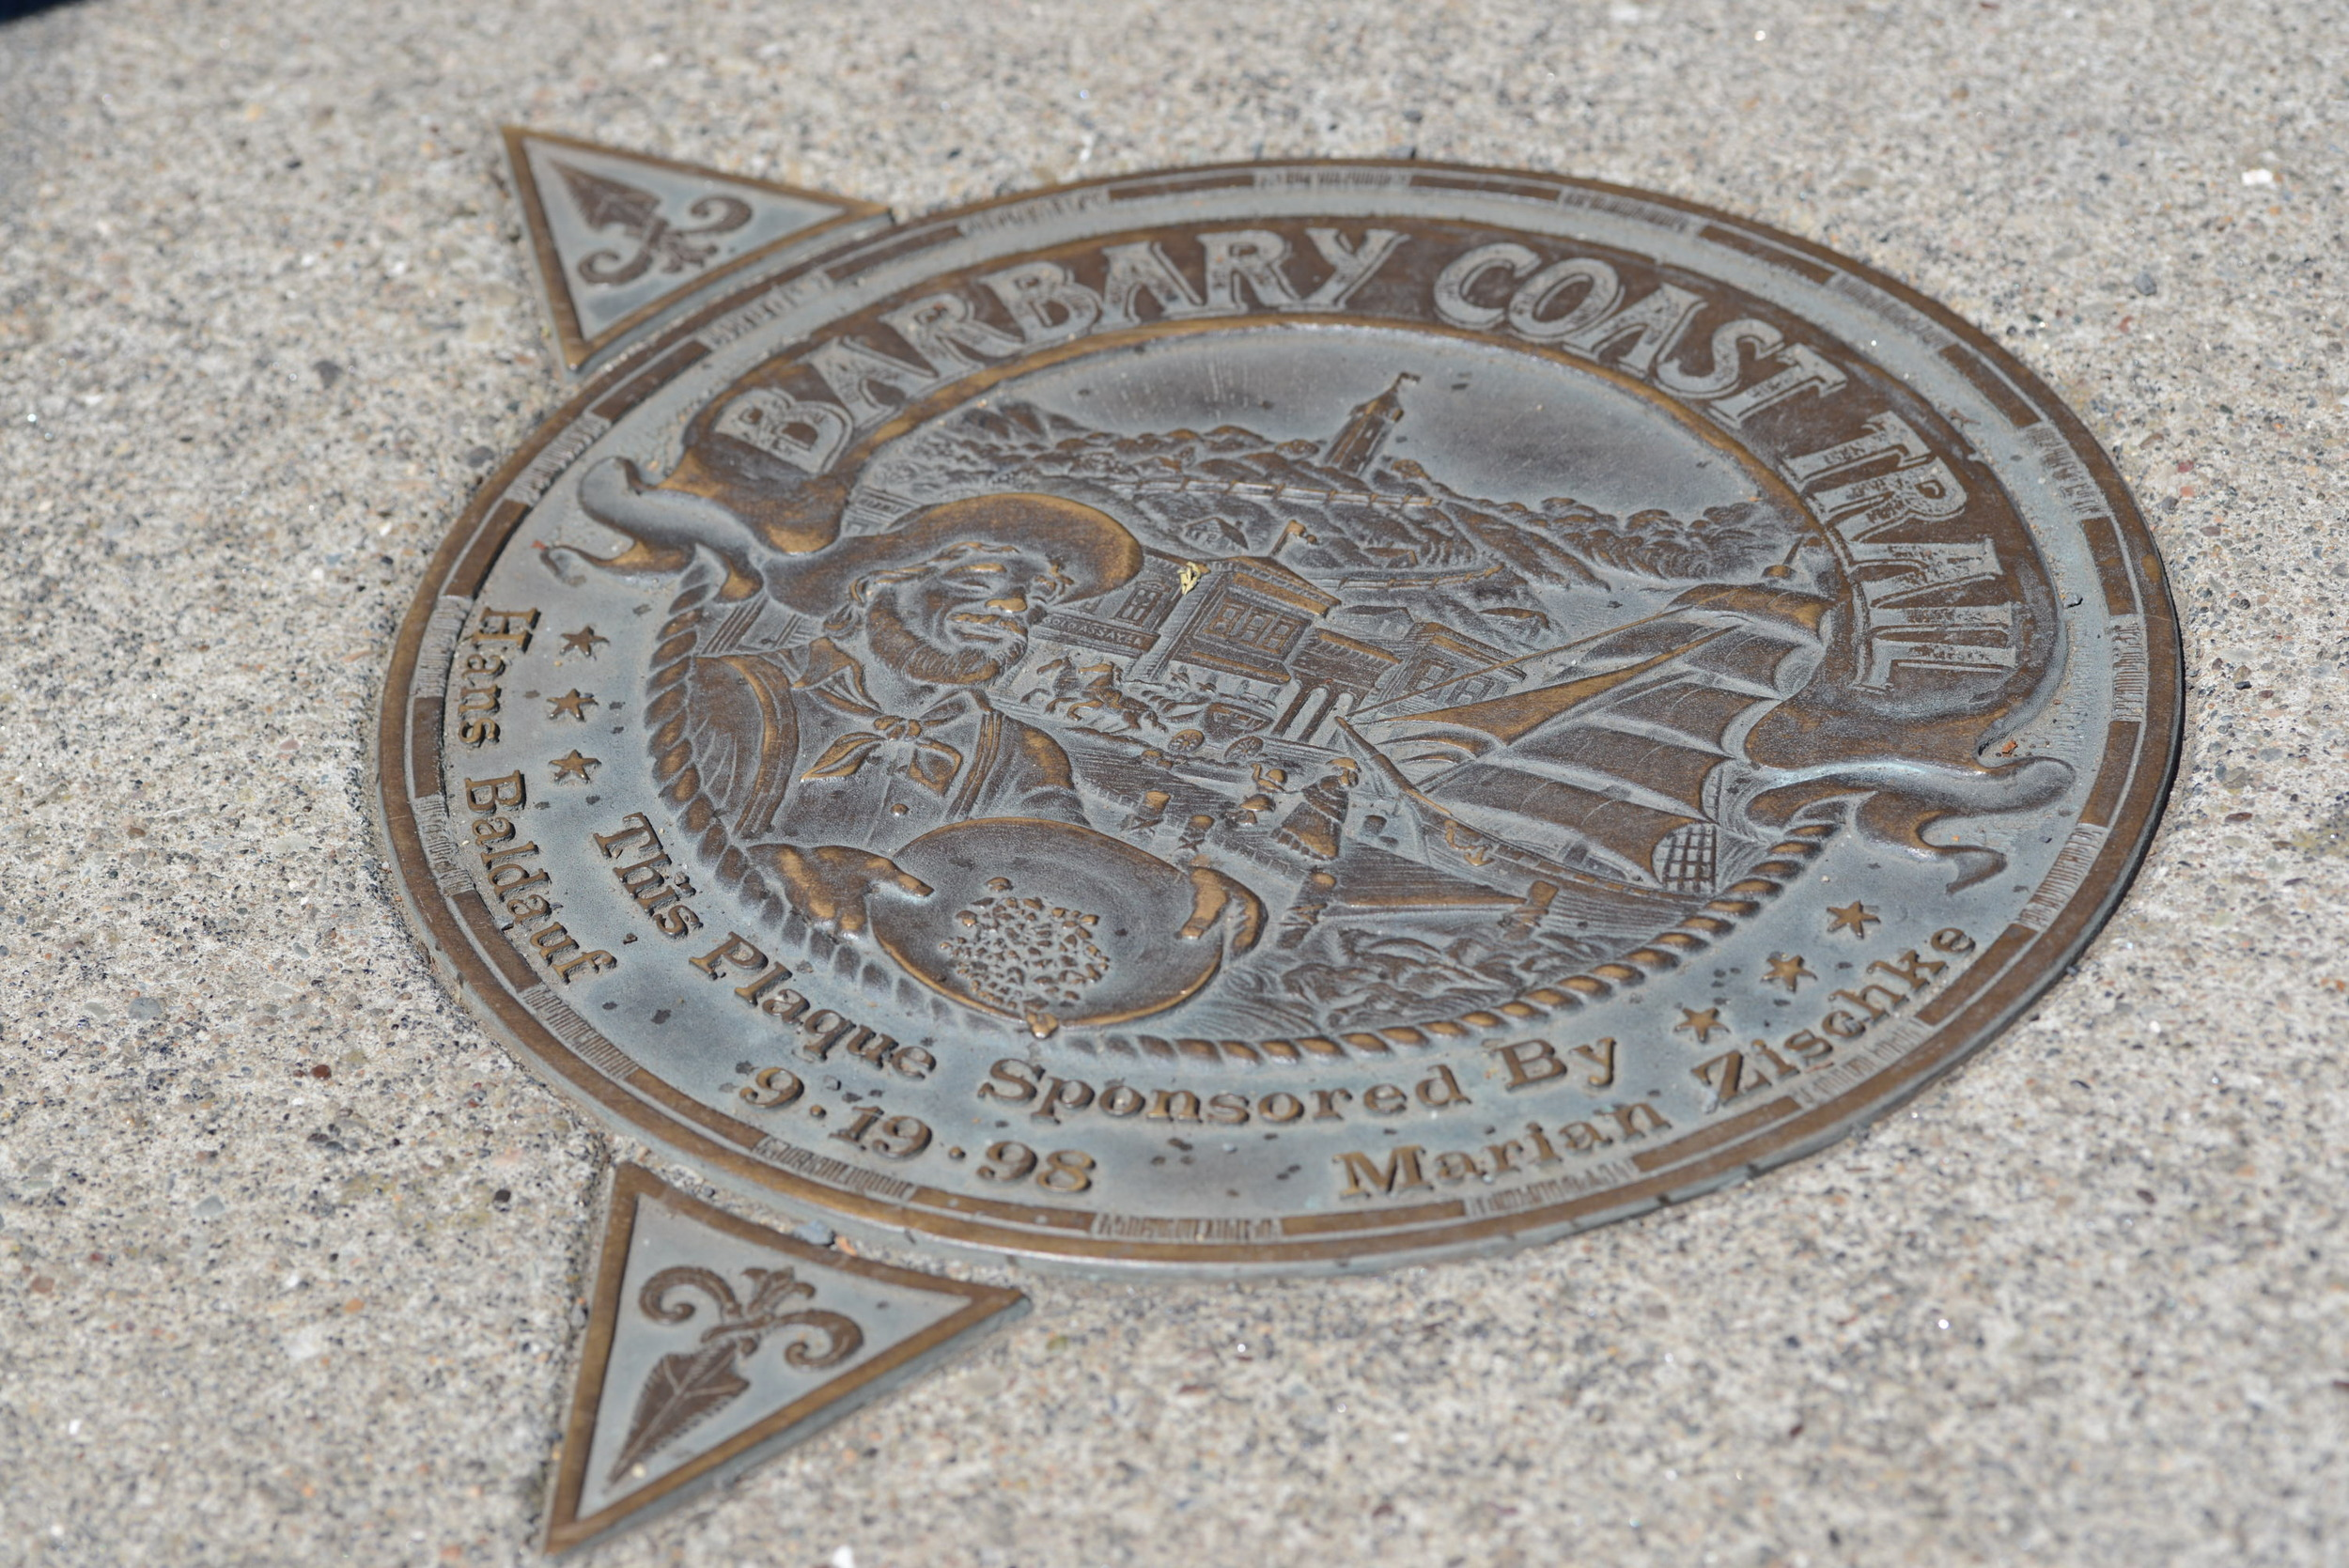 Medallions in the sidewalk indicate which way the trail turns.